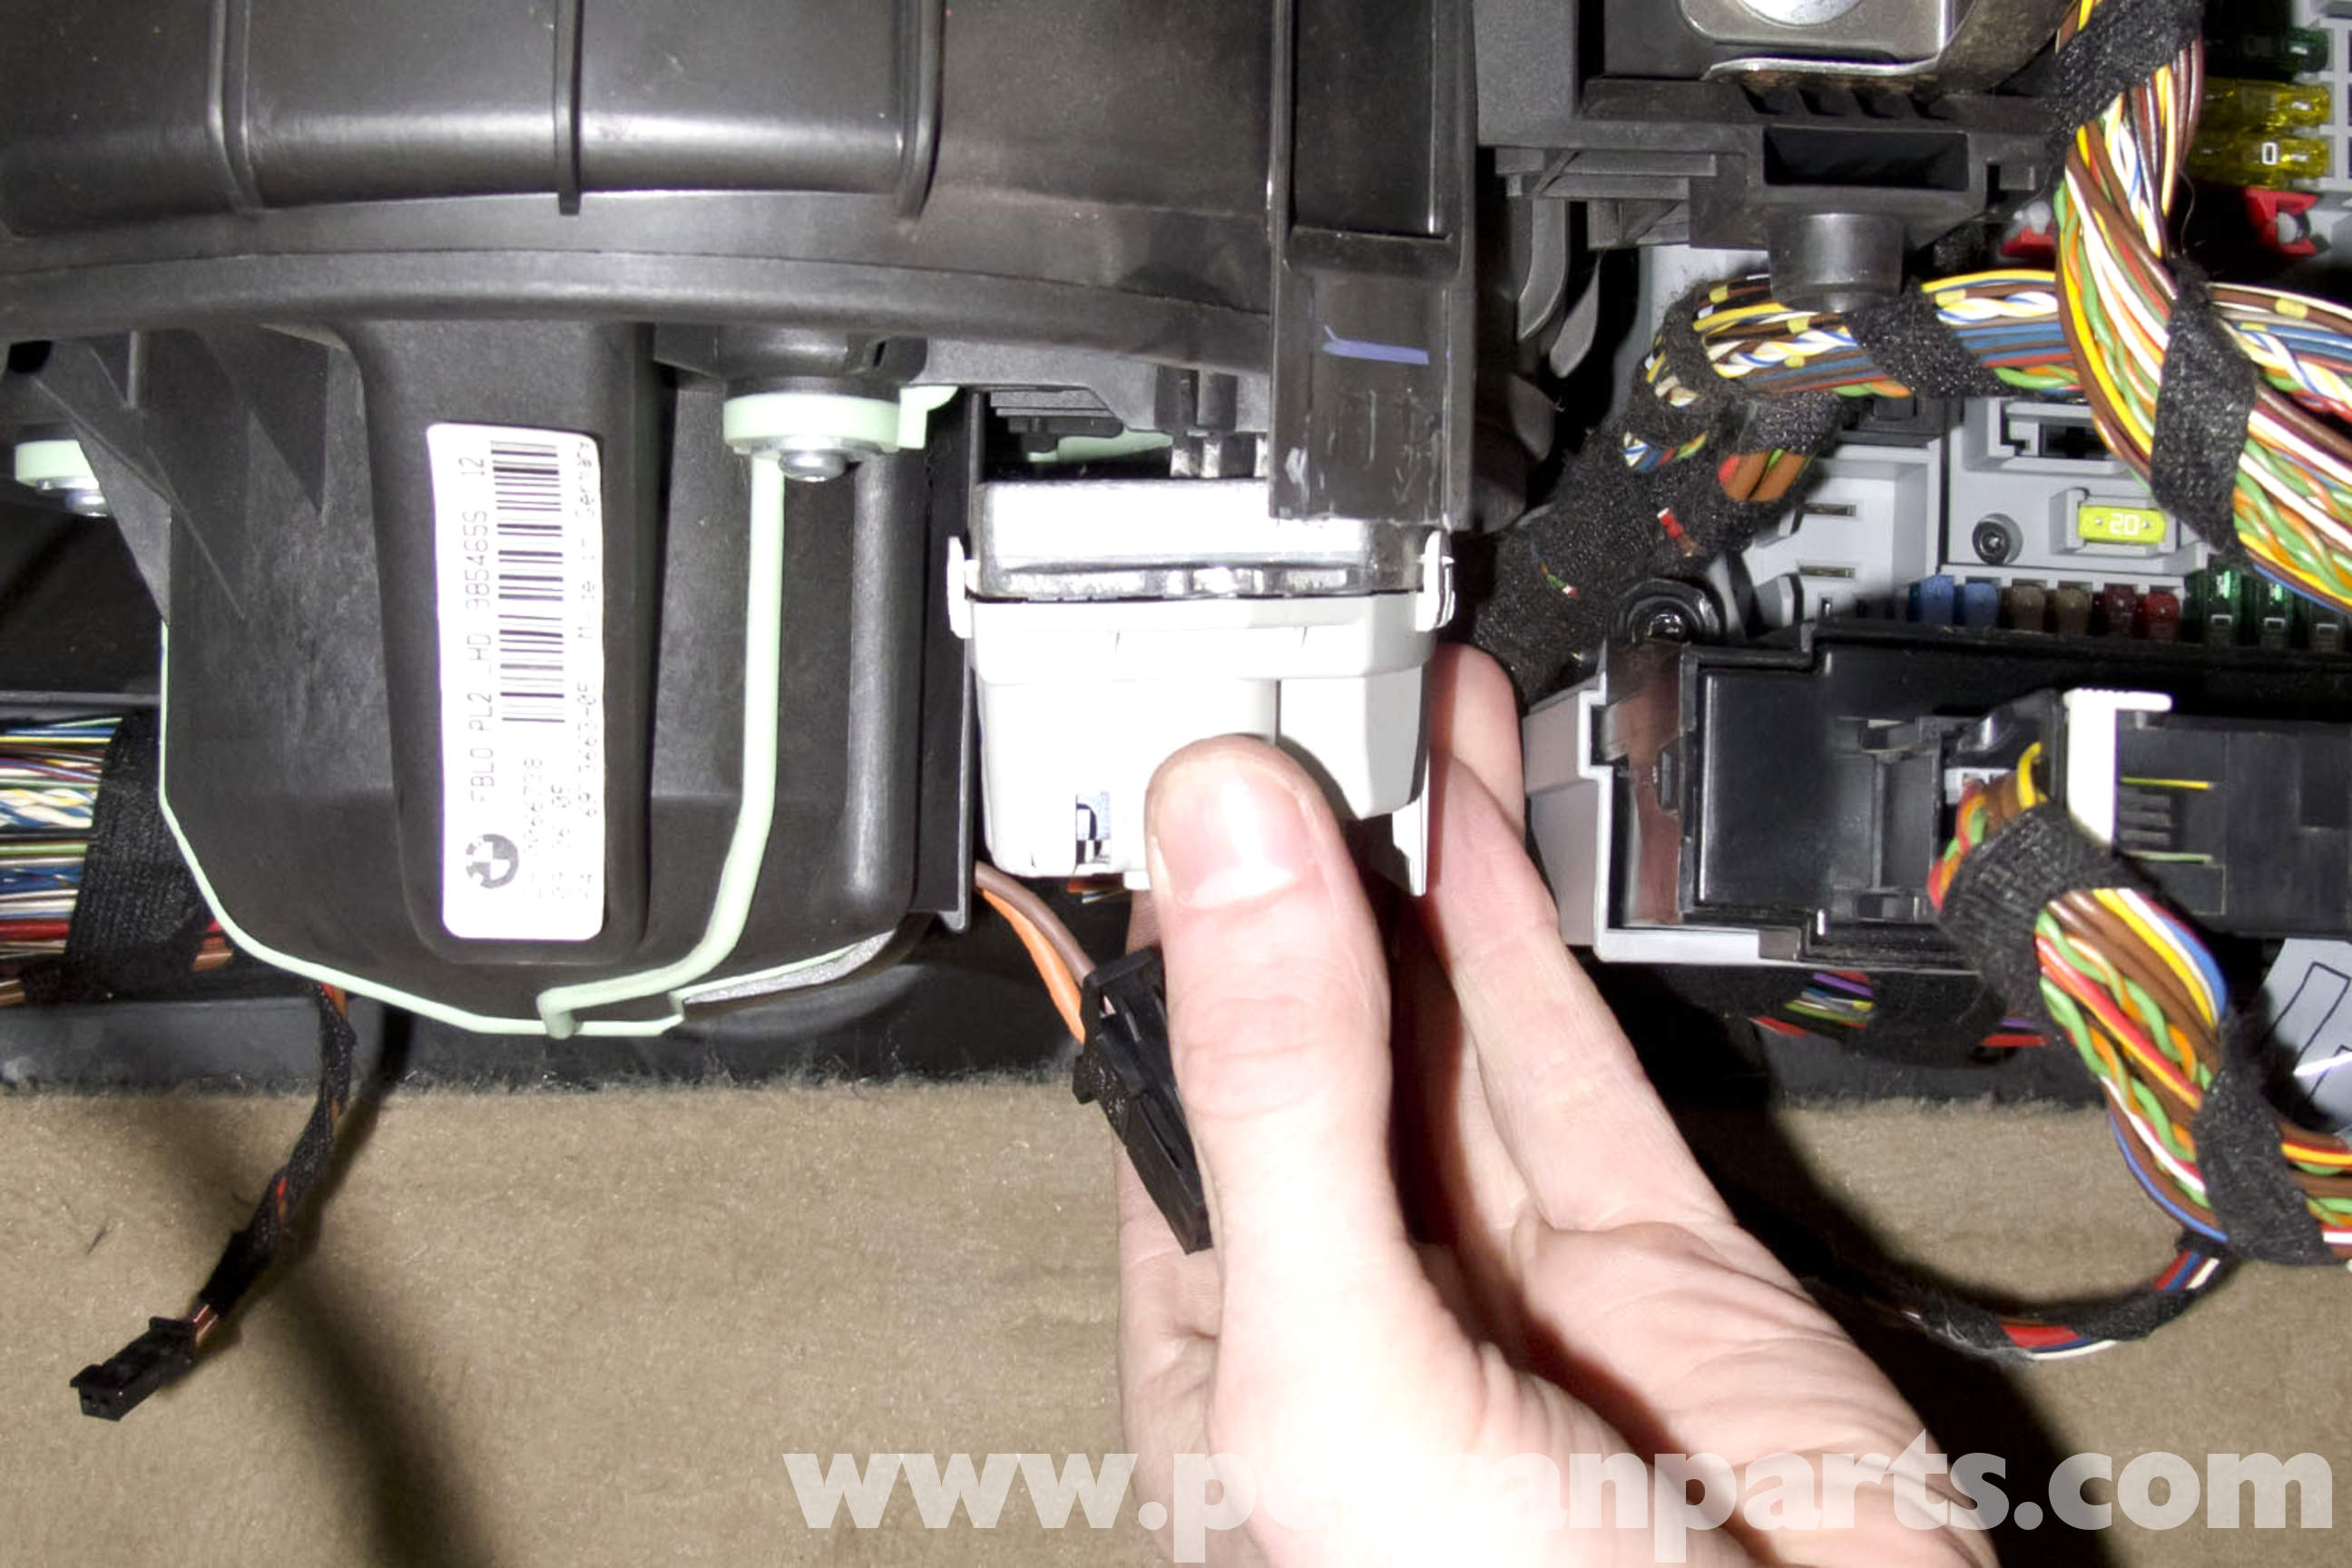 2007 Scion Tc Interior Fuse Box Diagram Quick Start Guide Of 95 Camry Relay 1995 Bmw 525i Fuel Pump Location In Addition Free Engine Image For User Manual Download Toyota 2006